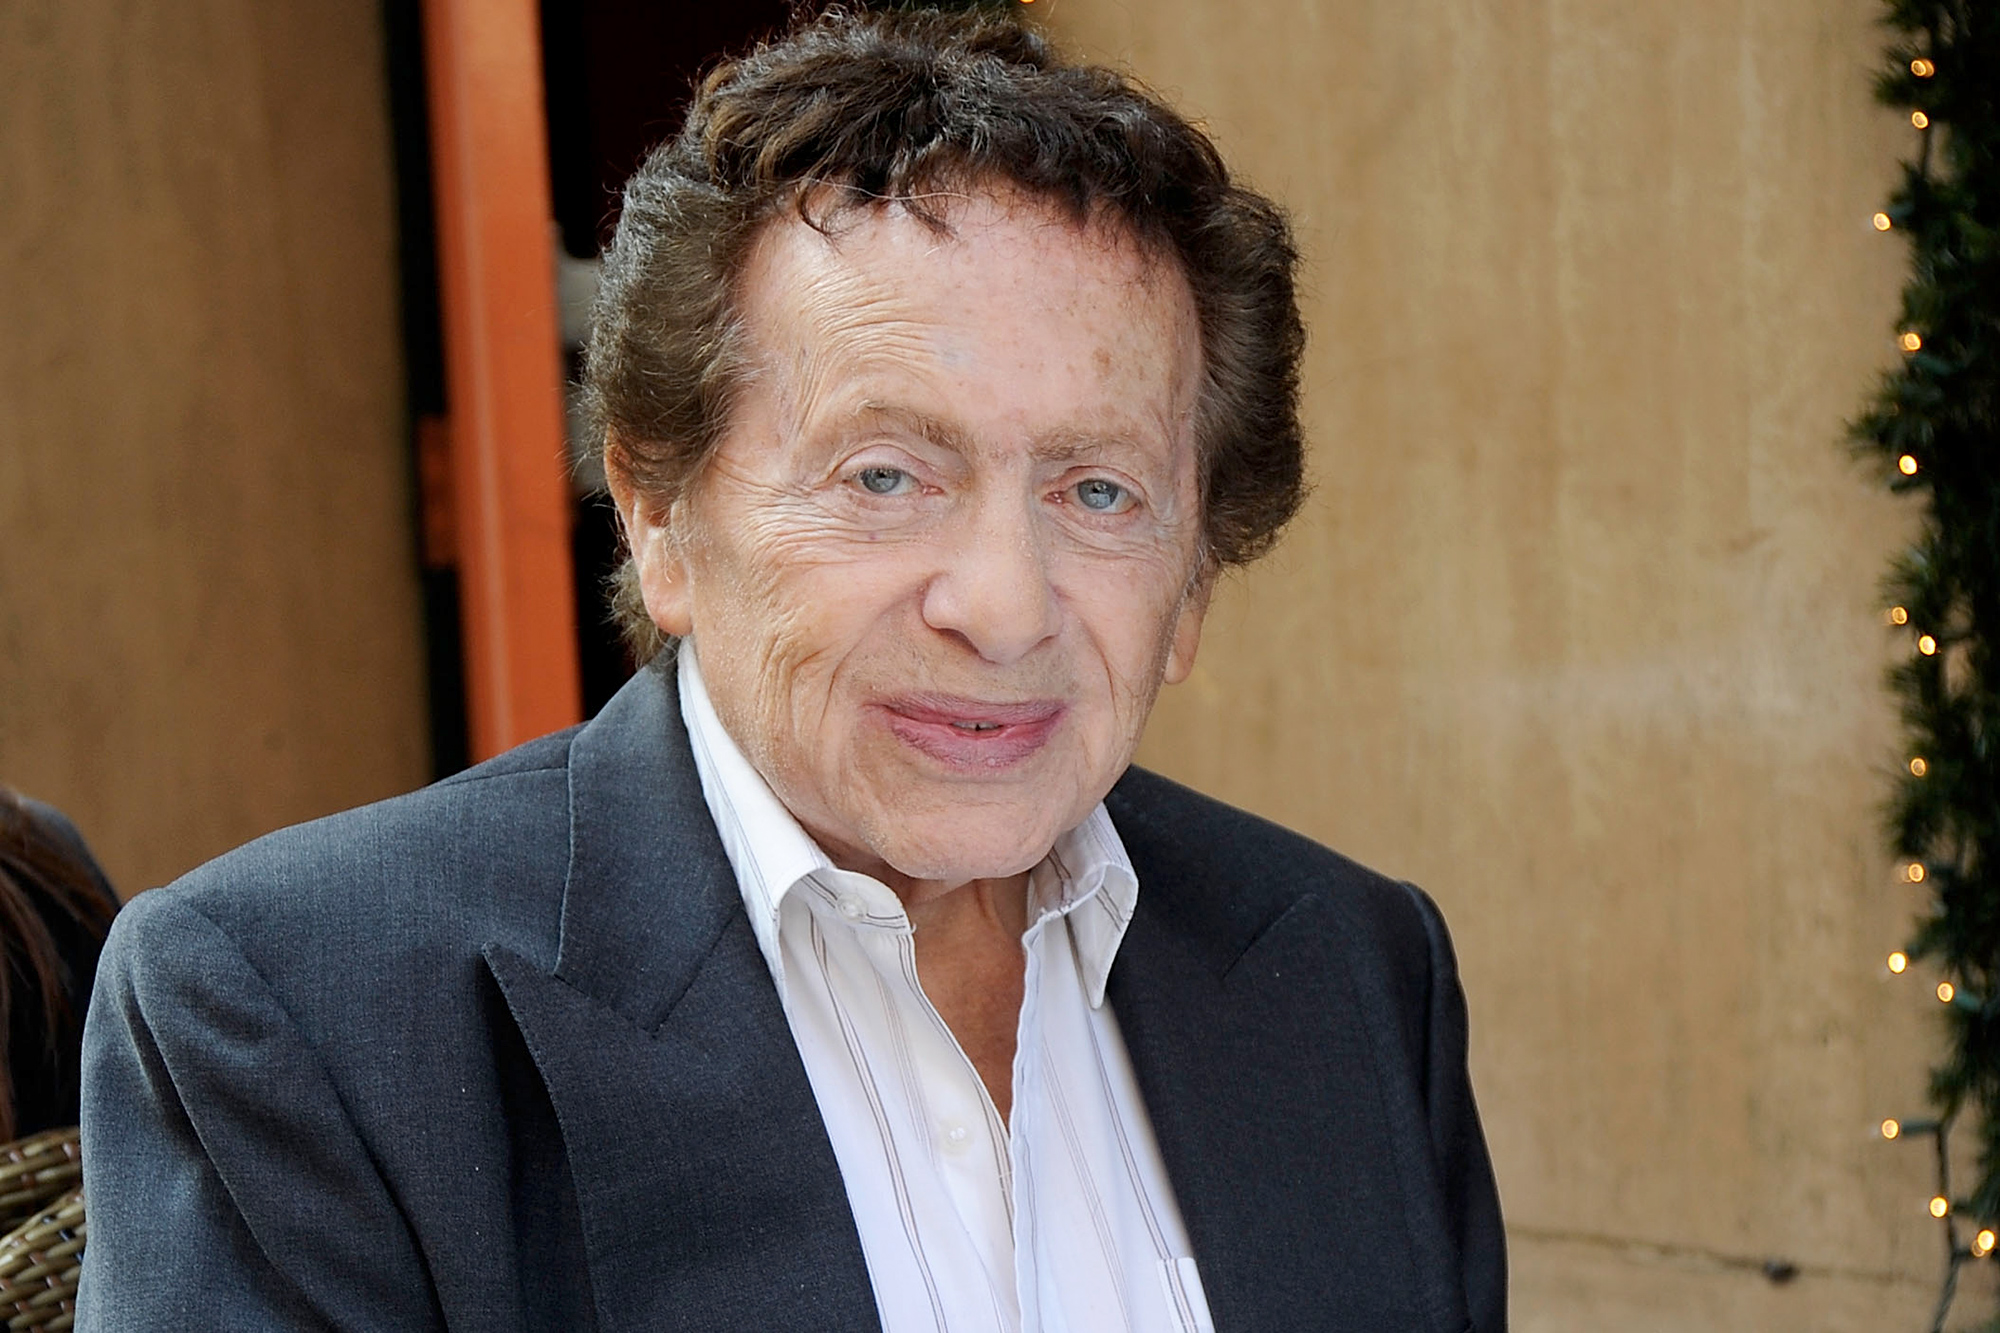 Jackie Mason has lunch on 6th Avenue in Manhattan on March 22, 2012 in New York City.